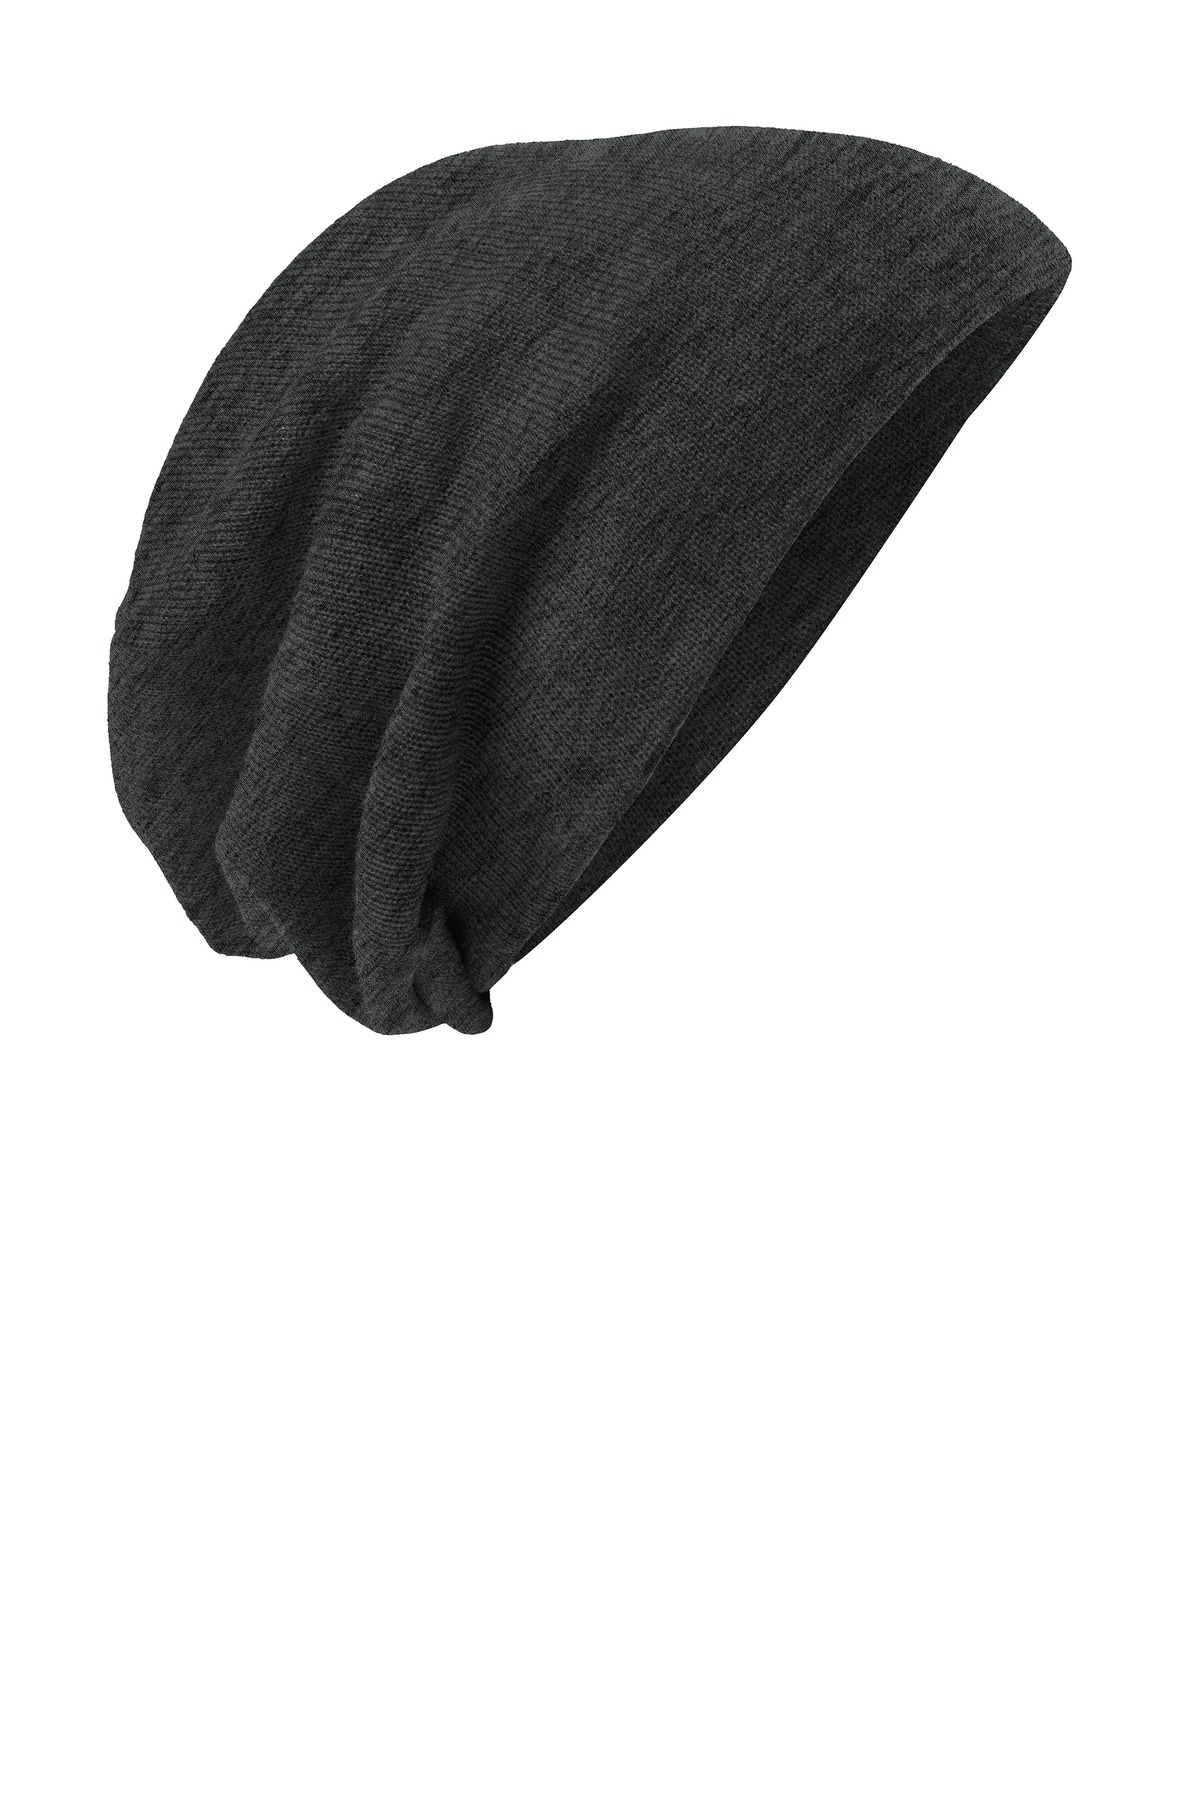 District ®  Slouch Beanie DT618 - Charcoal Heather